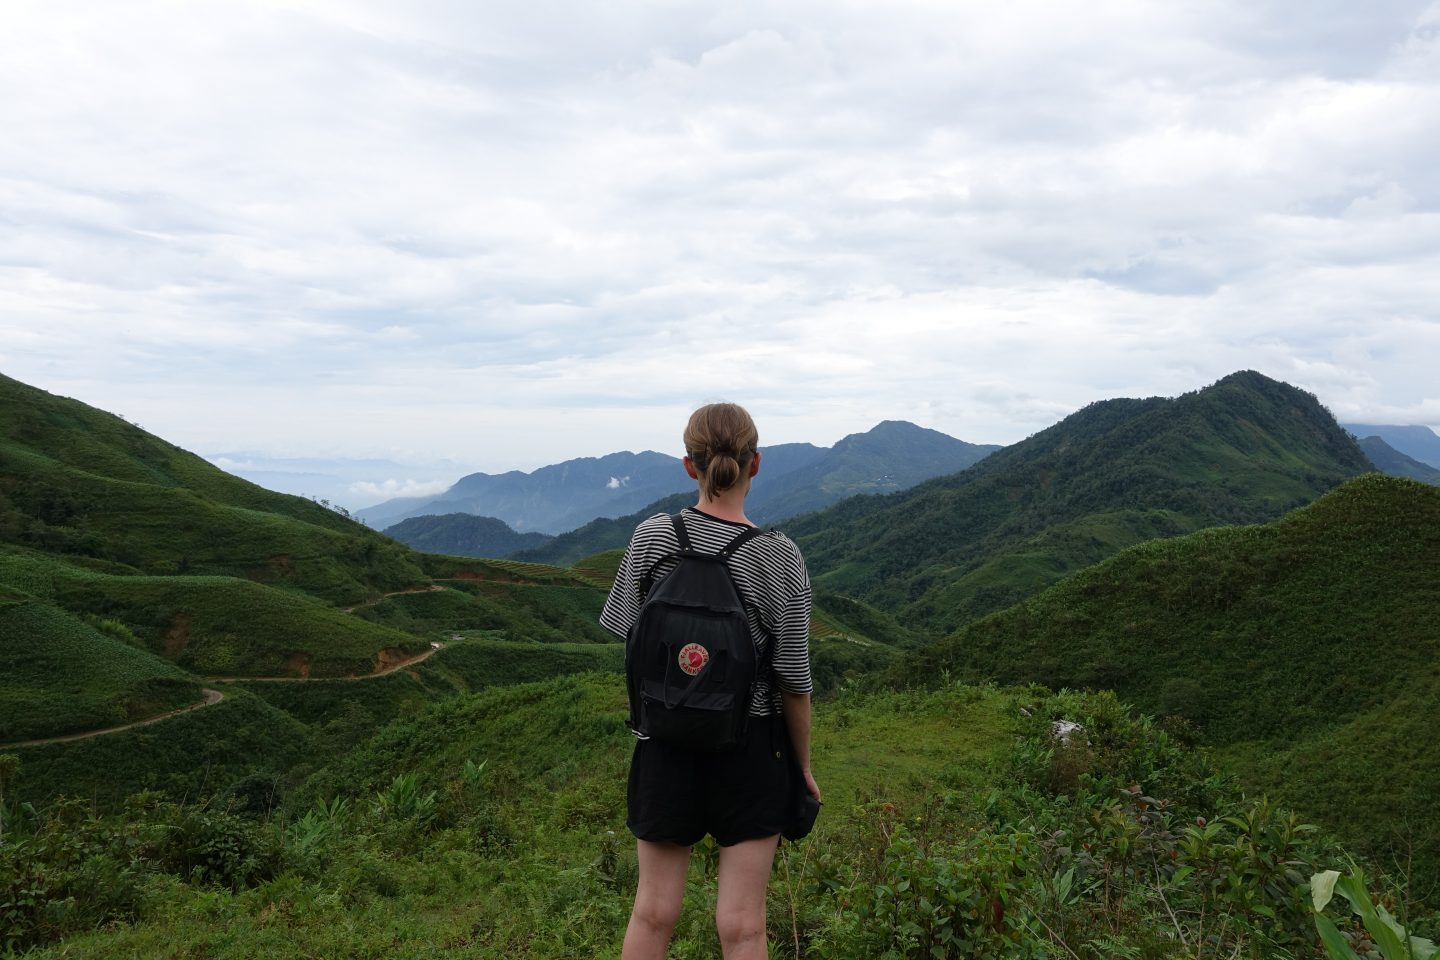 10 Things I've Learned After 10 Months Of Travel